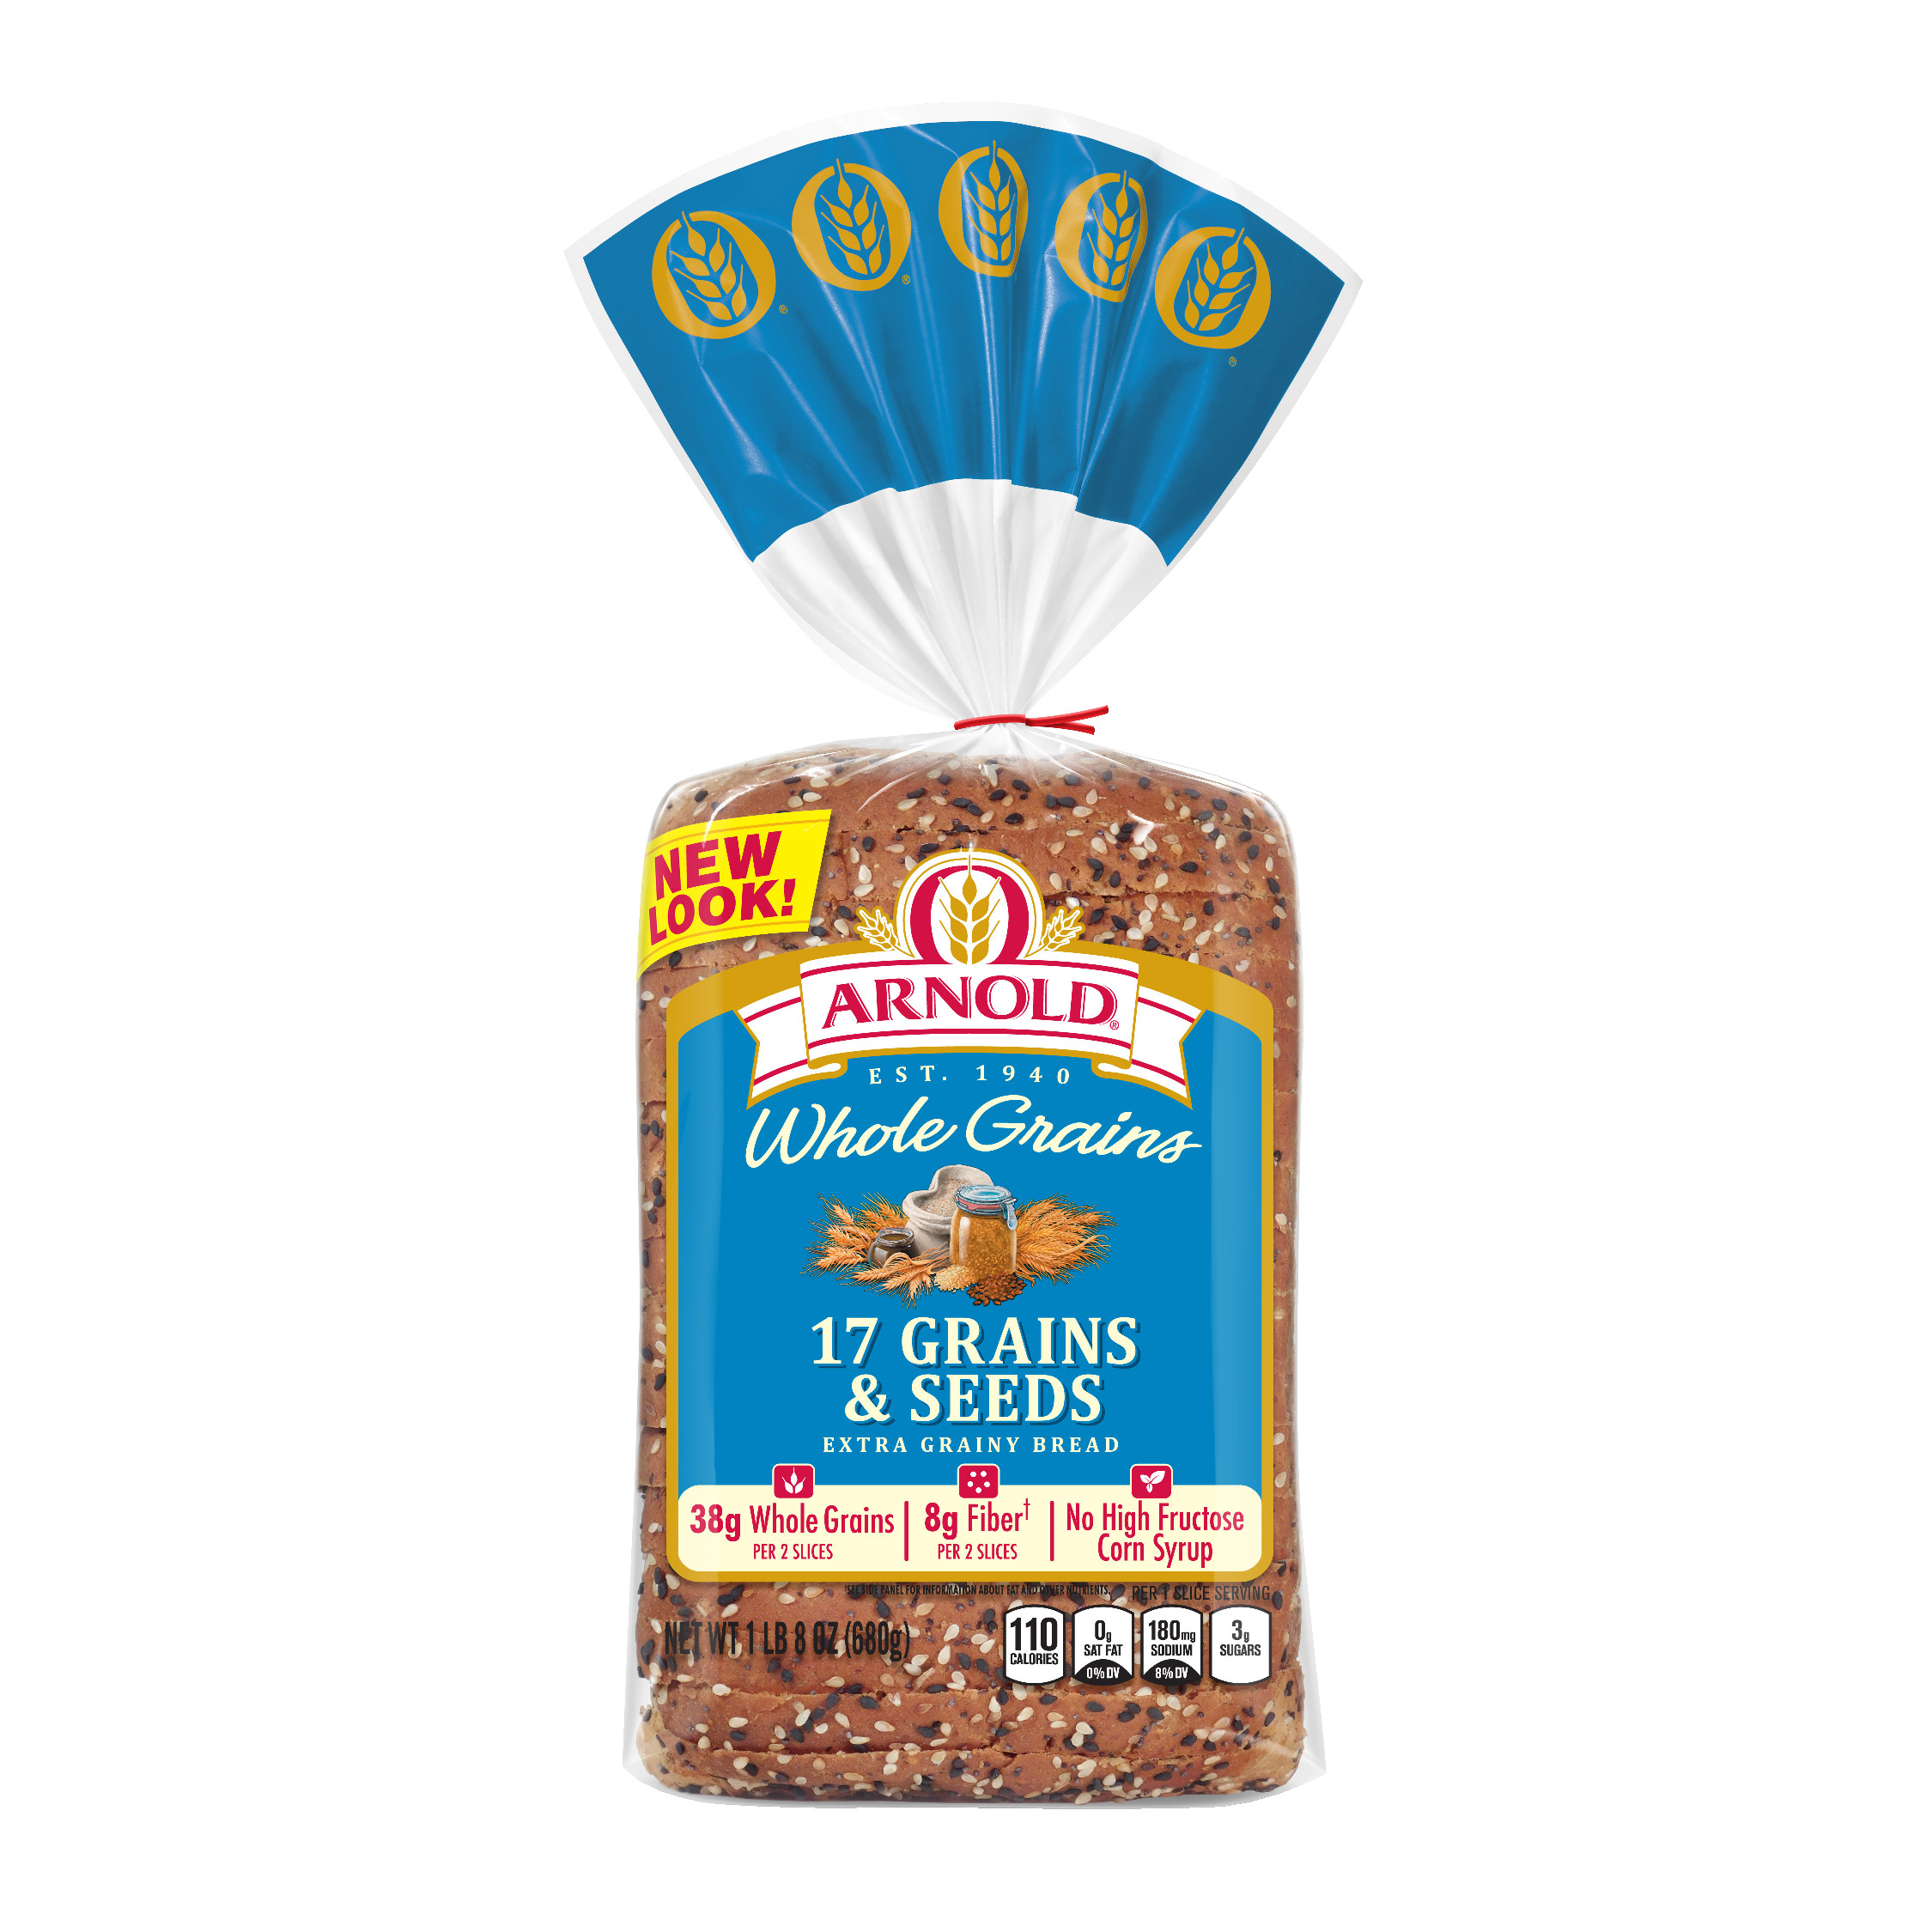 Arnold Whole Grains 17 Grains & Seeds Bread 24 oz